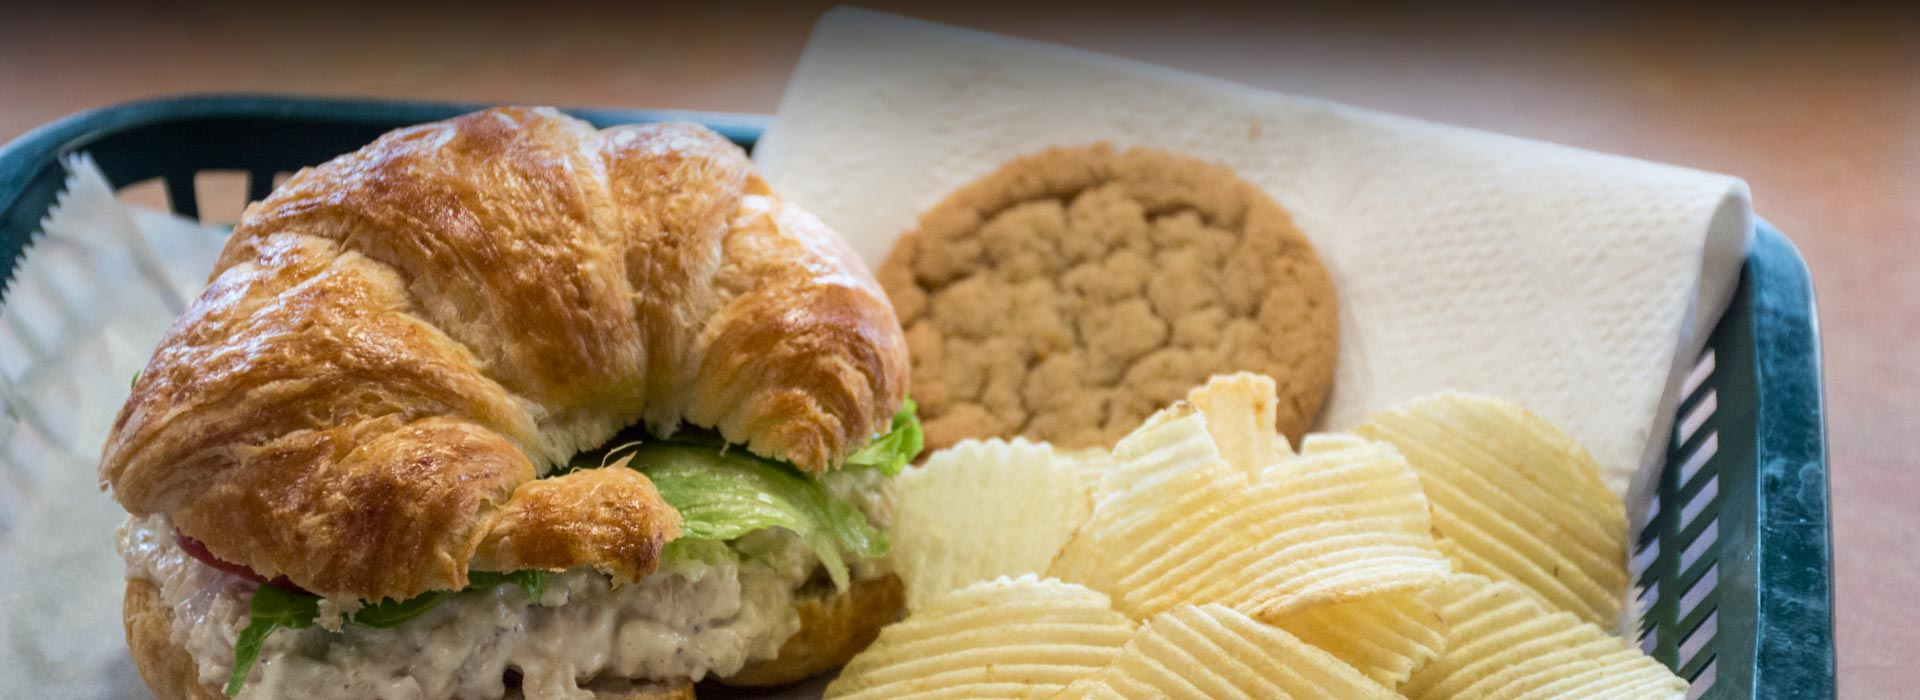 chicken salad croissant and potato chips